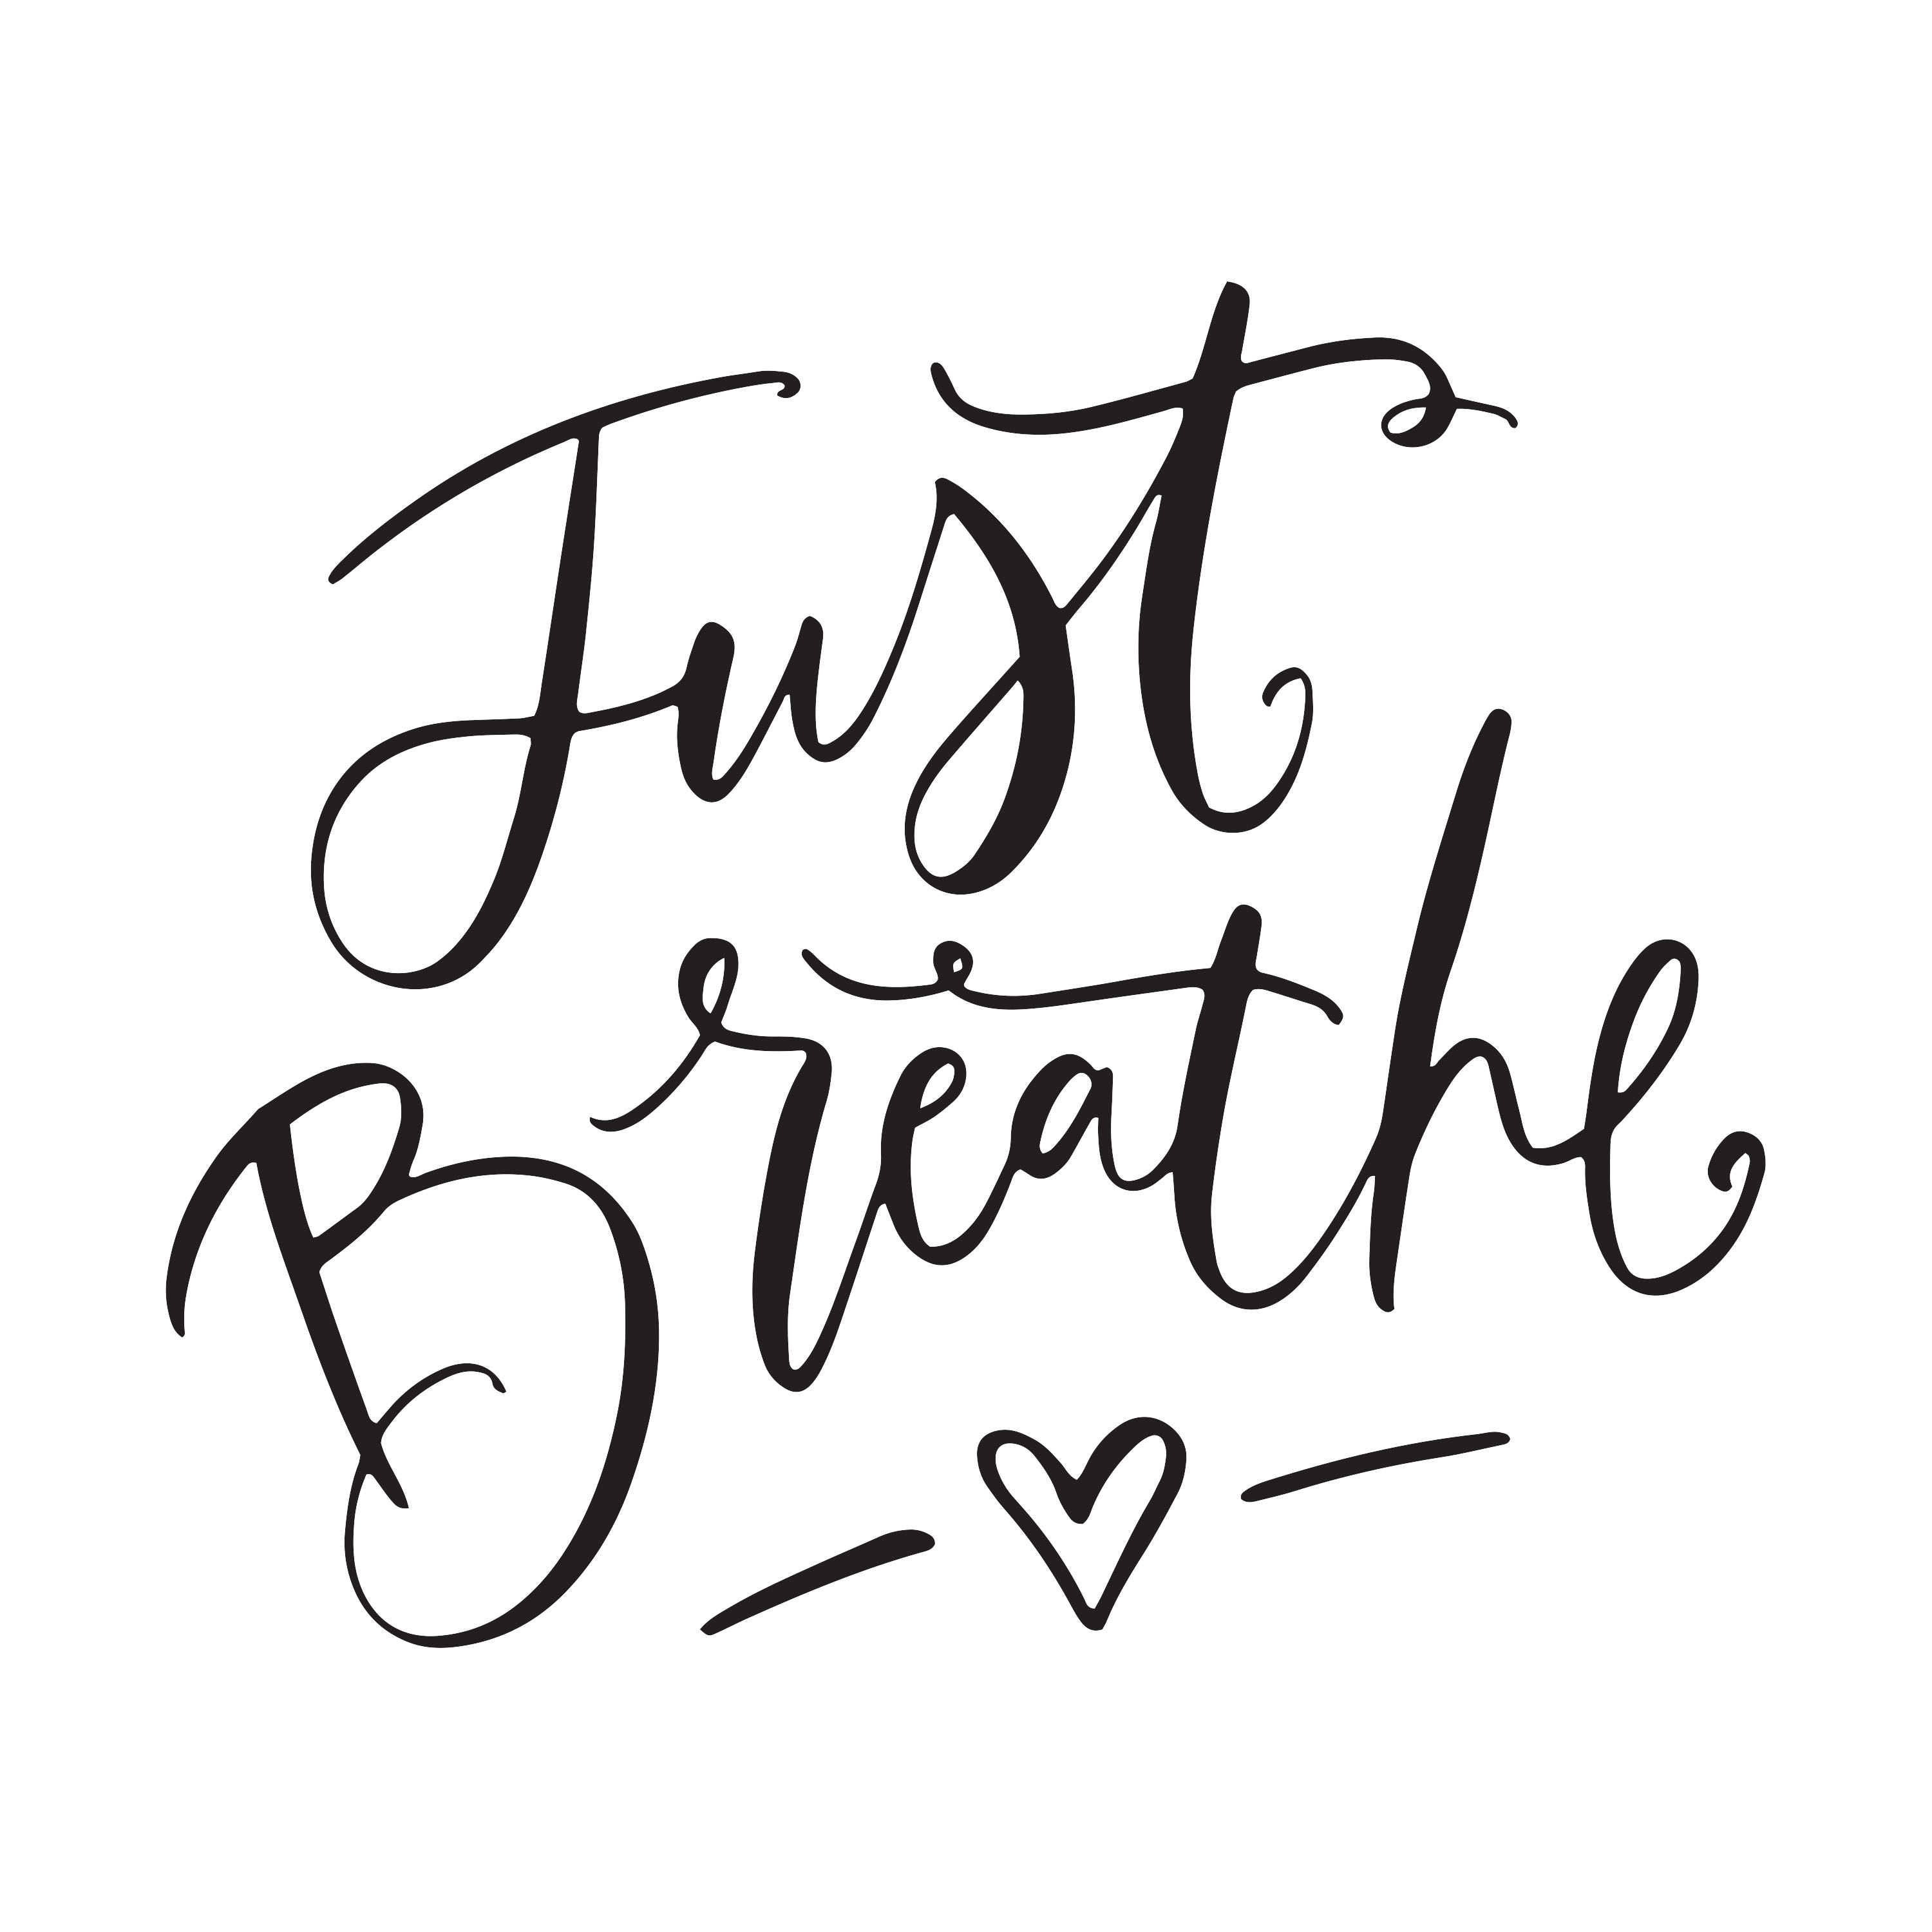 9. Just Breathe